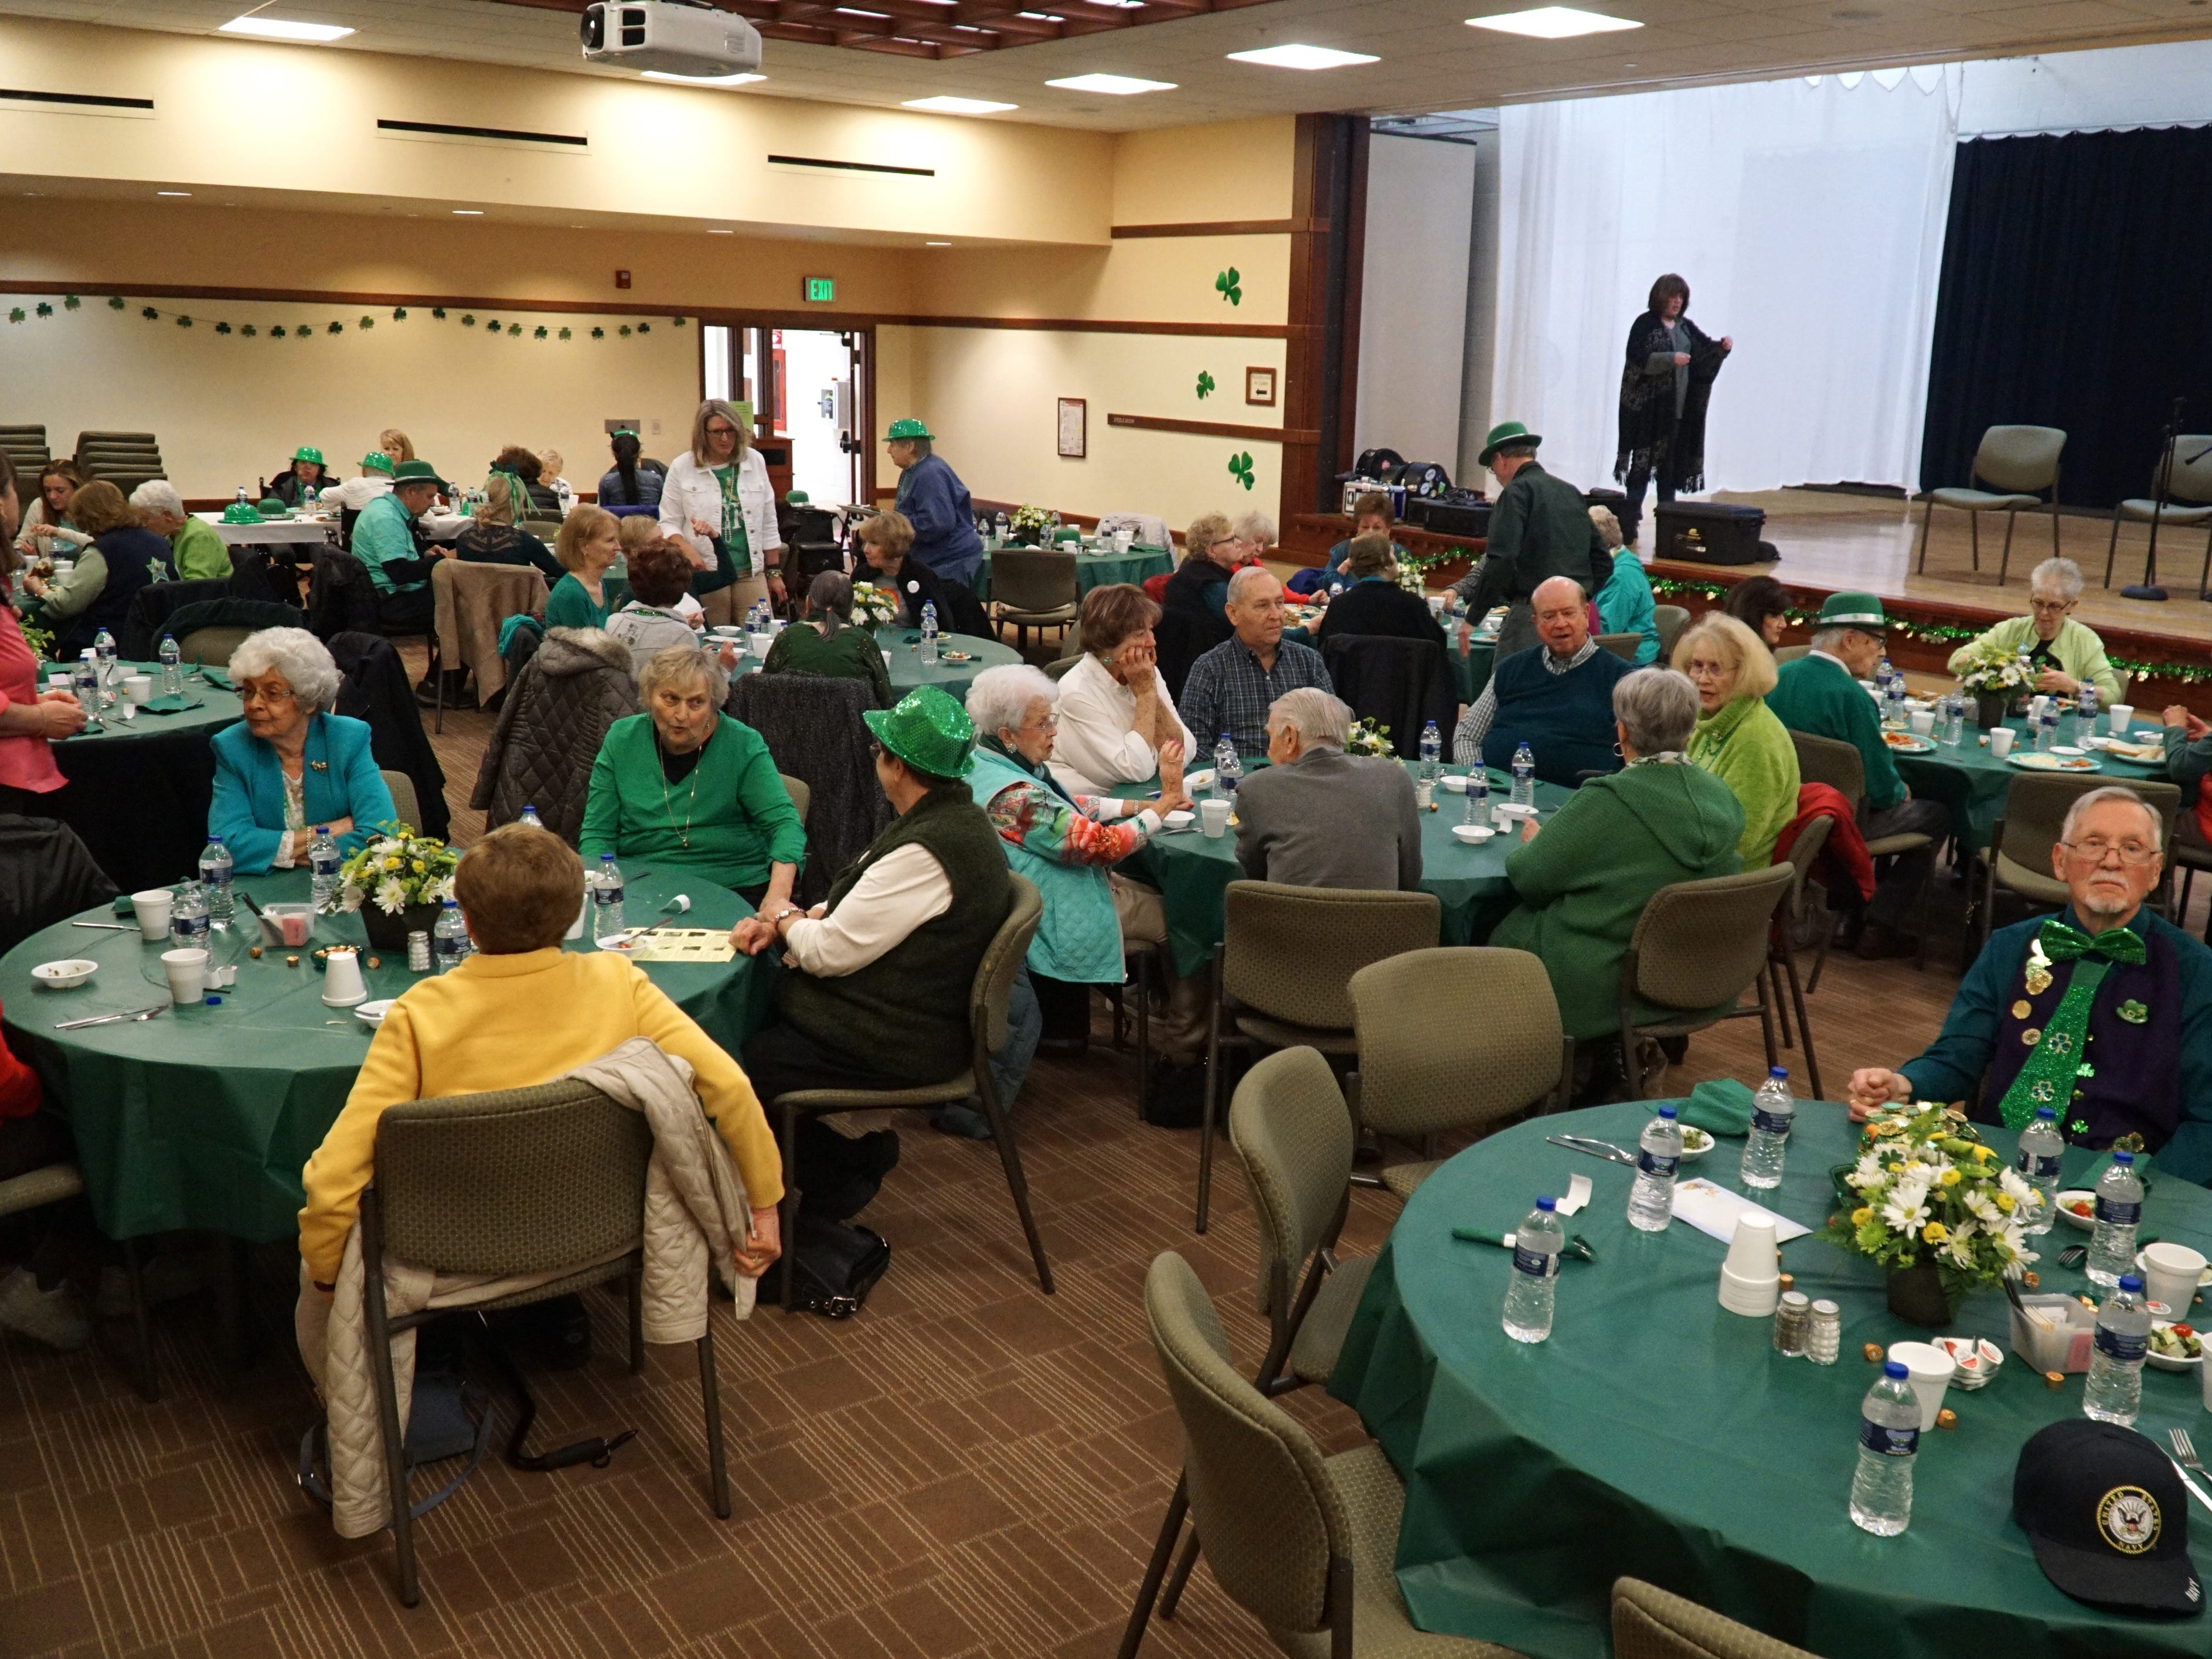 About 80 seniors gathered for the Community Center's St. Patrick's Day luncheon on March 14.